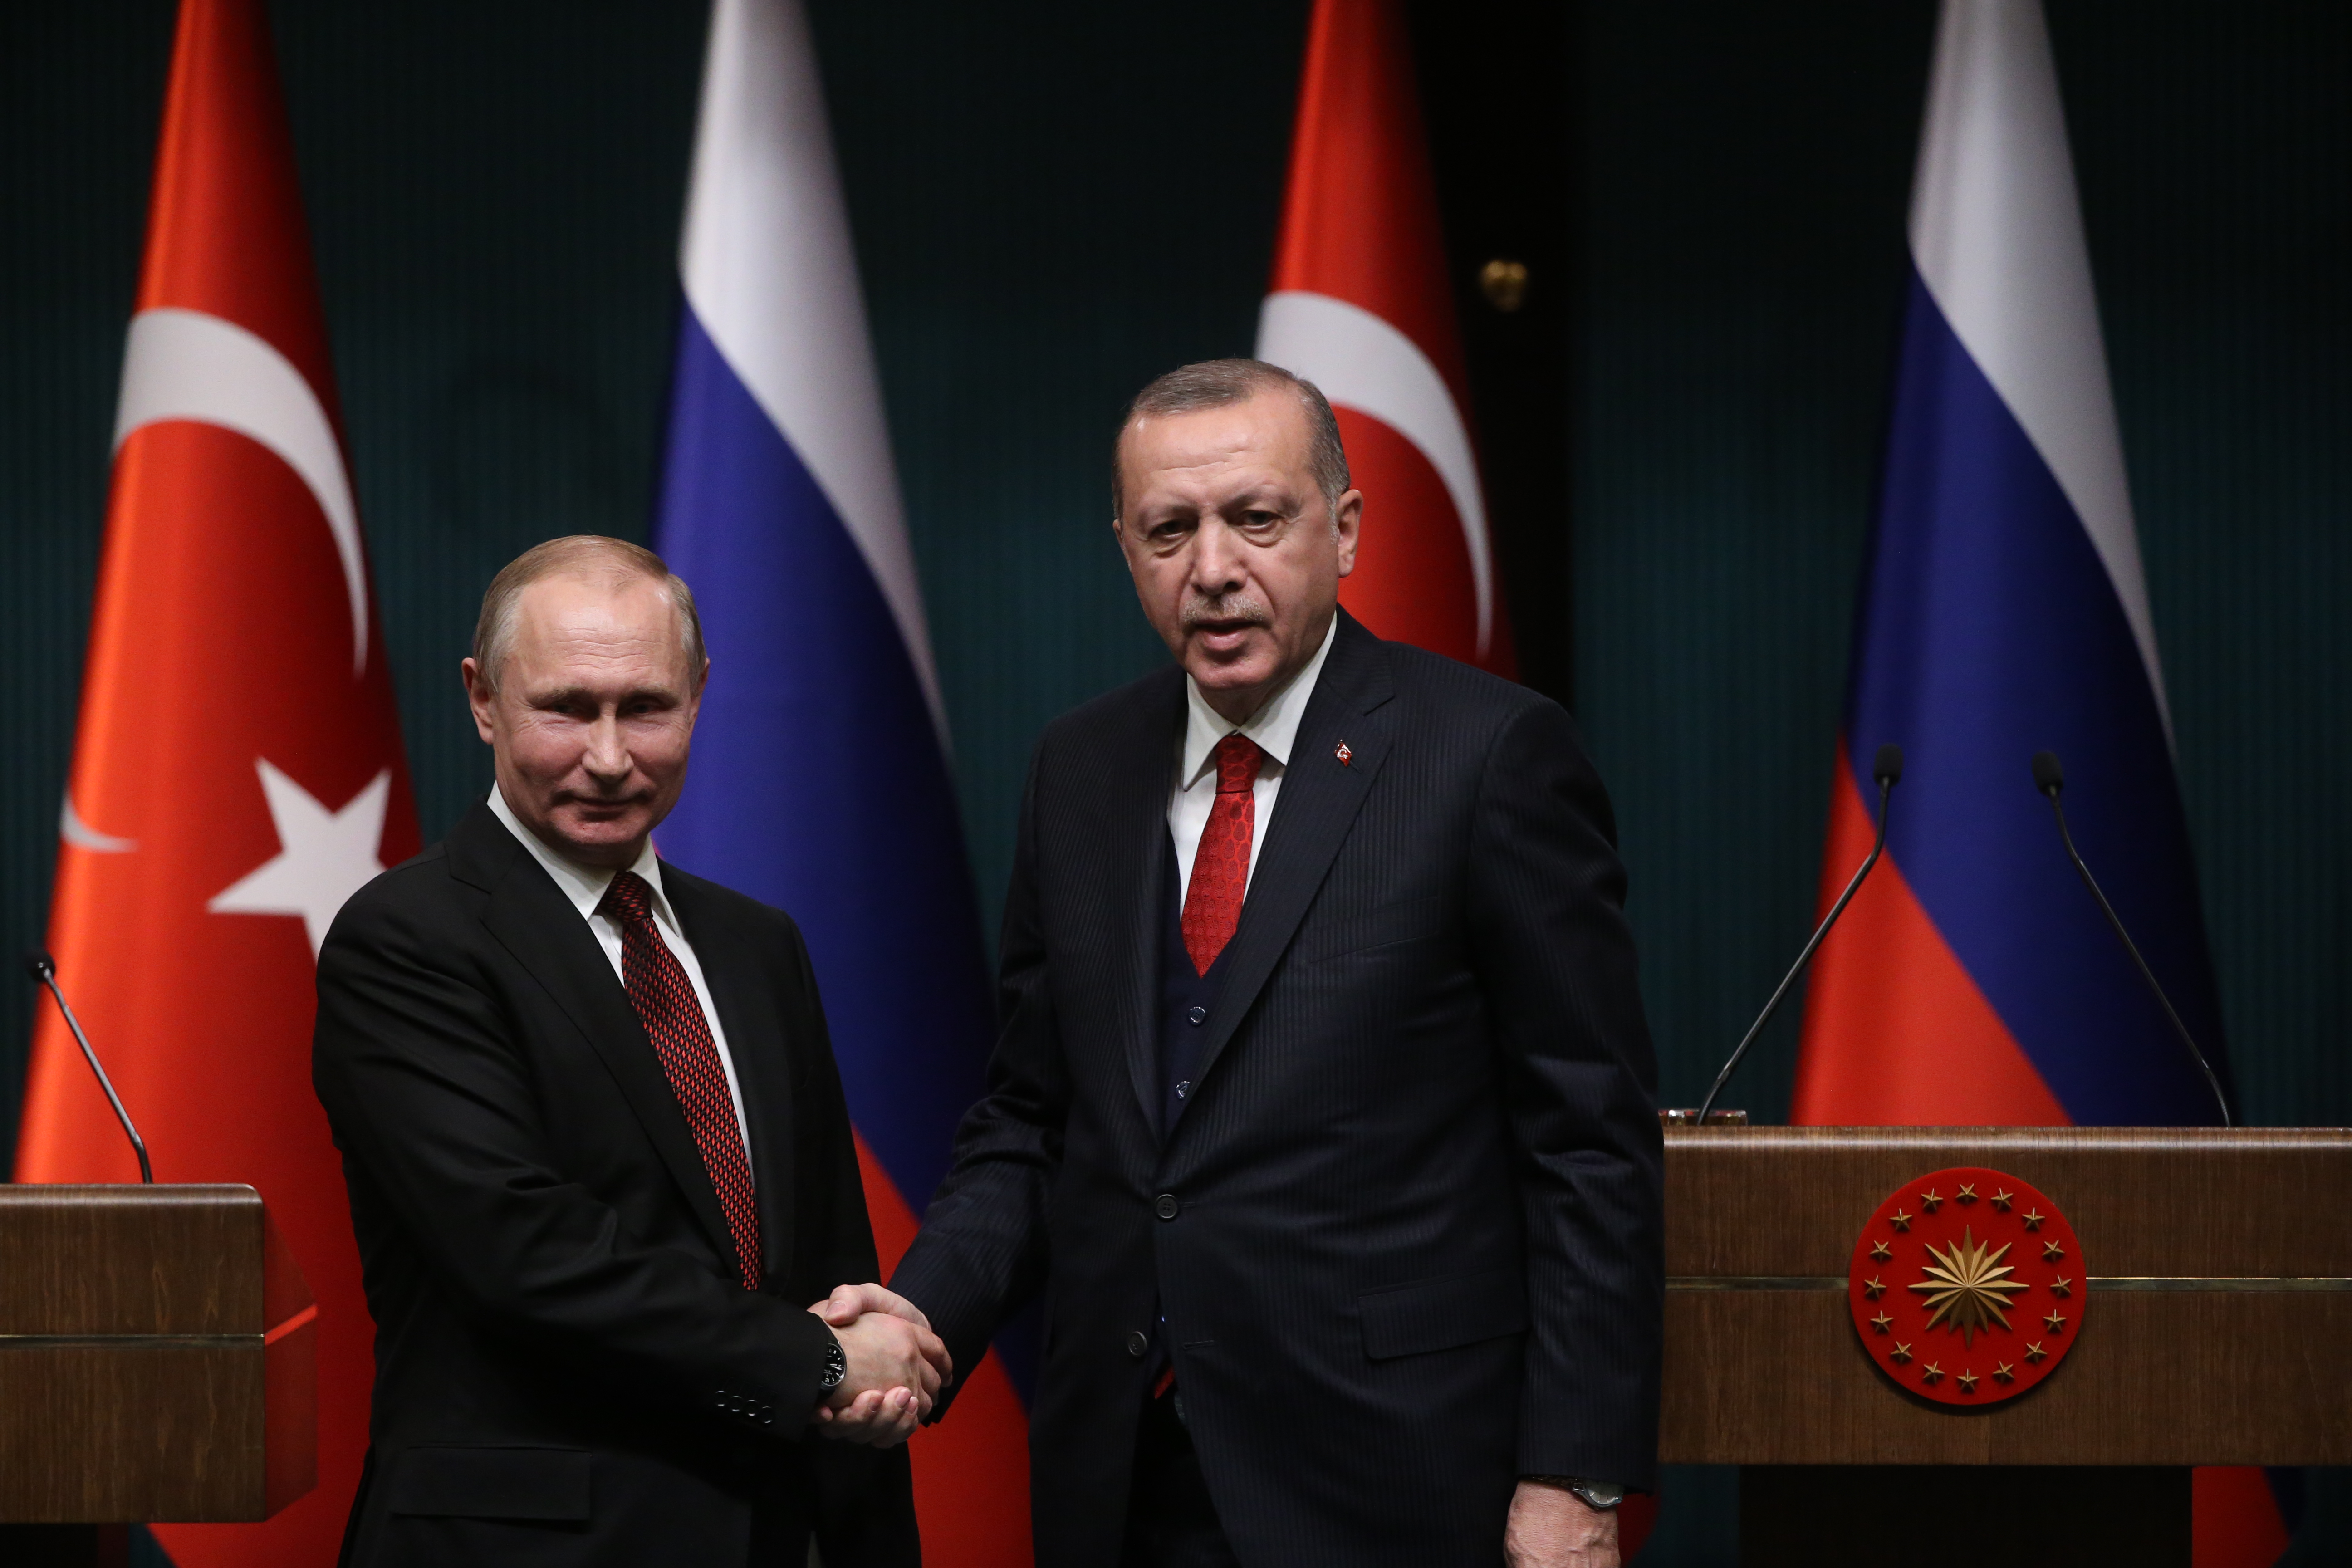 Russian President Vladimir Putin shakes hands with Turkish President Recep Tayyip Erdogan during their joint press conference at the presidential palace on April 3, 2018 in Ankara, Turkey.